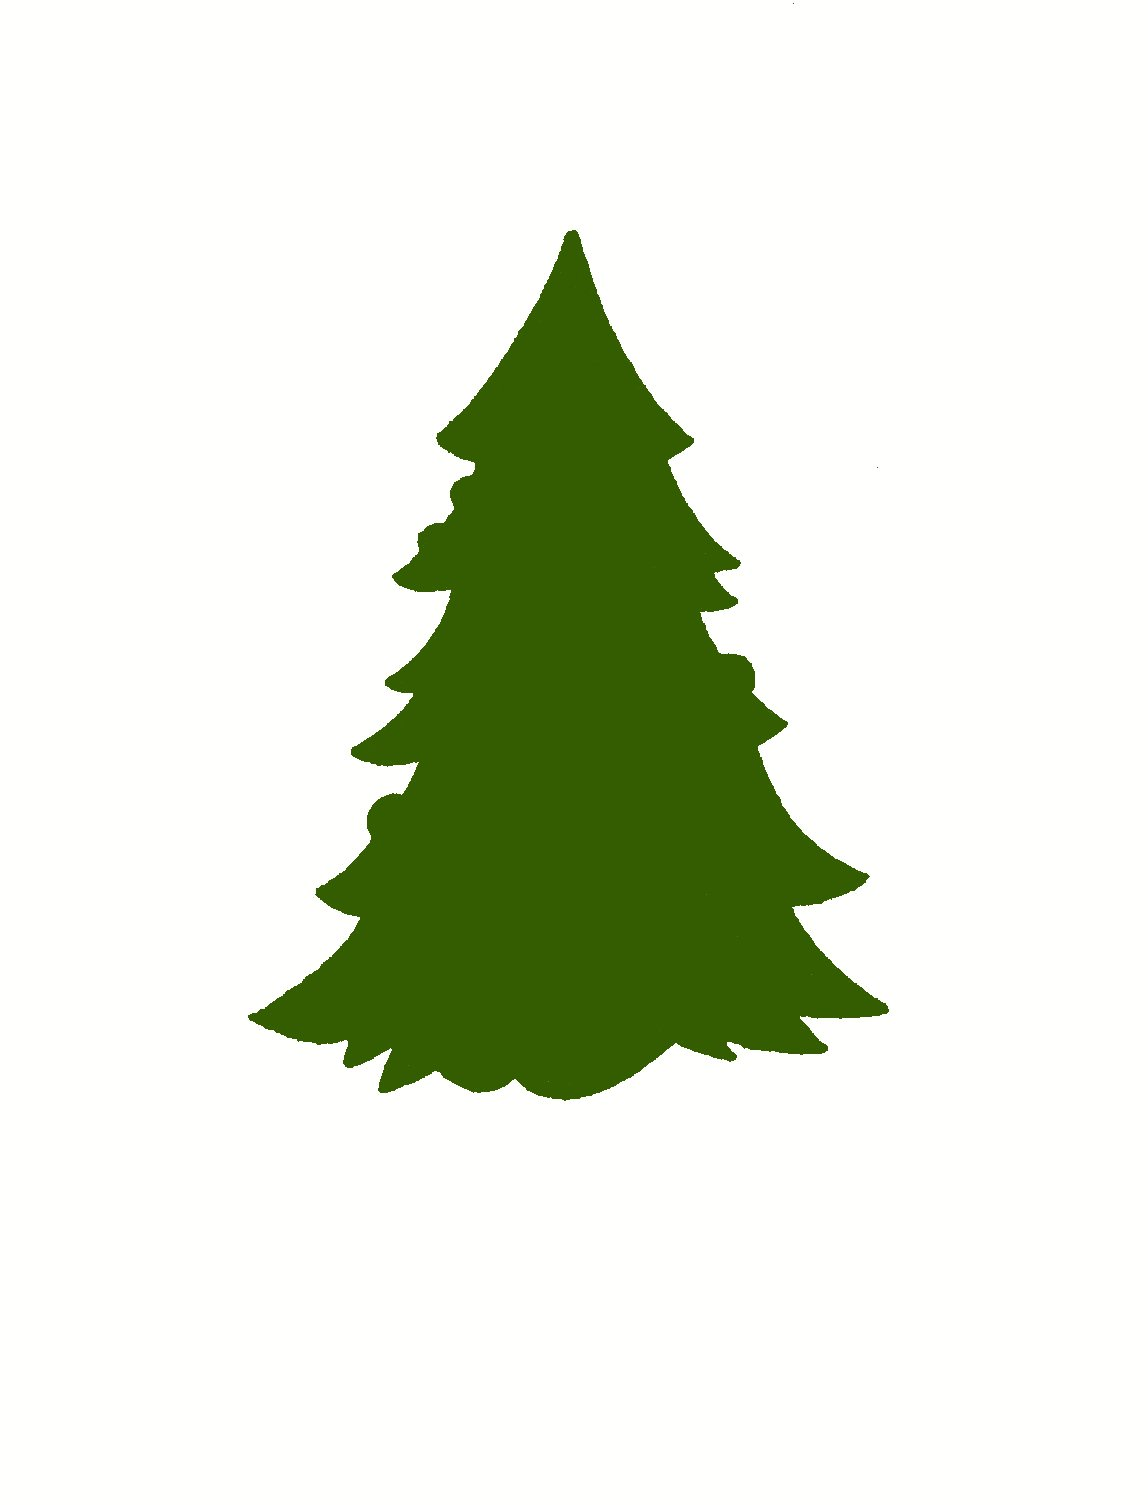 Pine Tree clipart simple Trees Clipart Free Images Silhouette